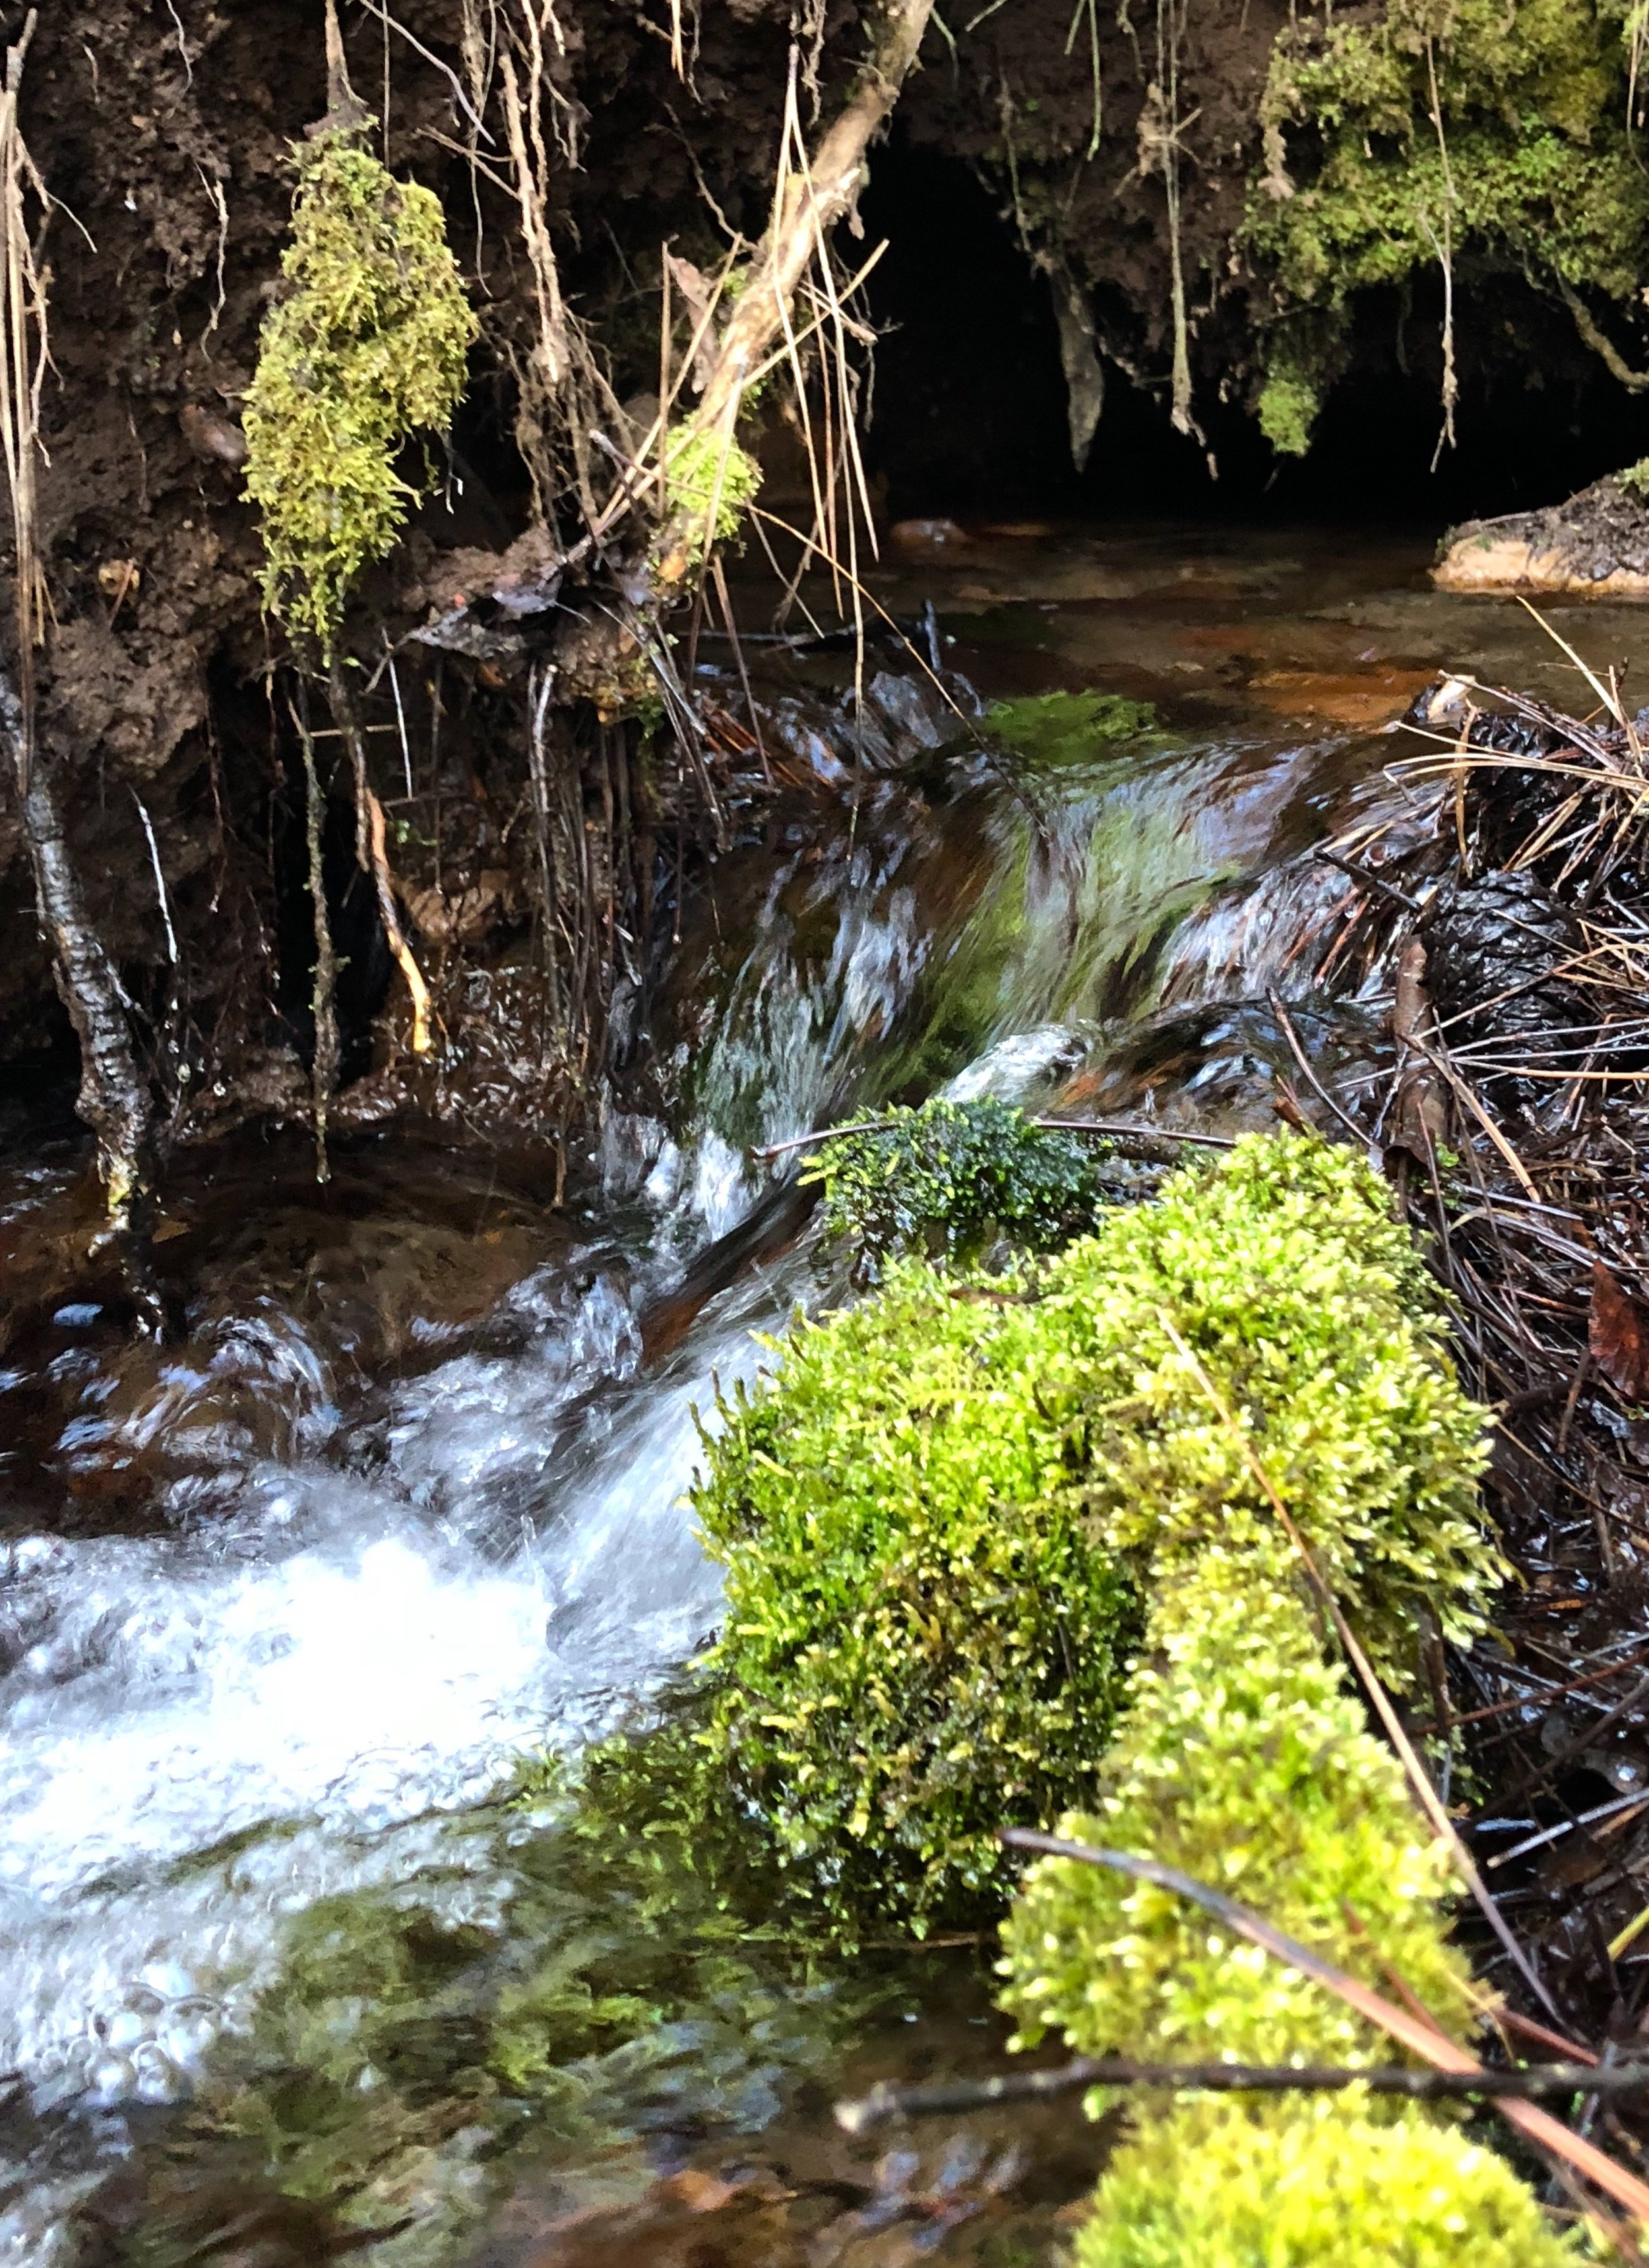 Relax to the sound of bubbling springs - Why does the sound of flowing bubbling water have such a powerful effect of relaxation? Brain scans show that the sounds of nature—wind in the trees, water bubbling up from underground springs—can change our brains and bodies in ways that help us relax.